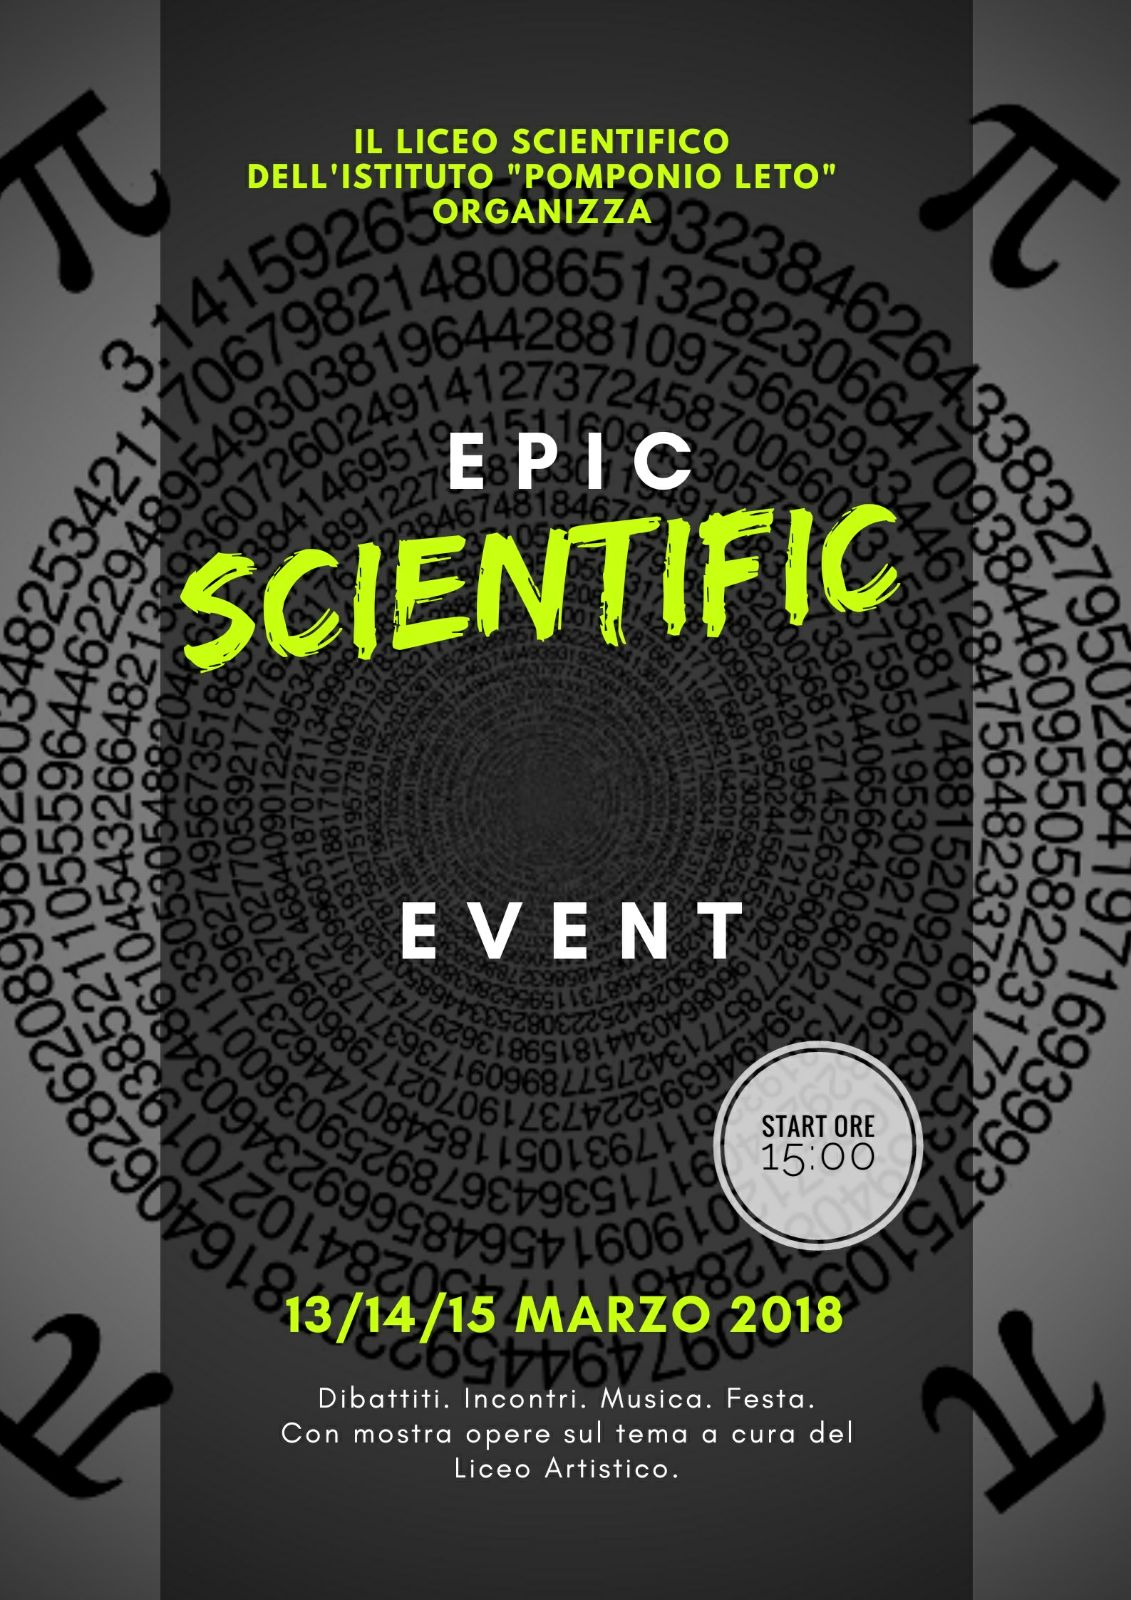 Epic Scientific Day al Pomponio Leto